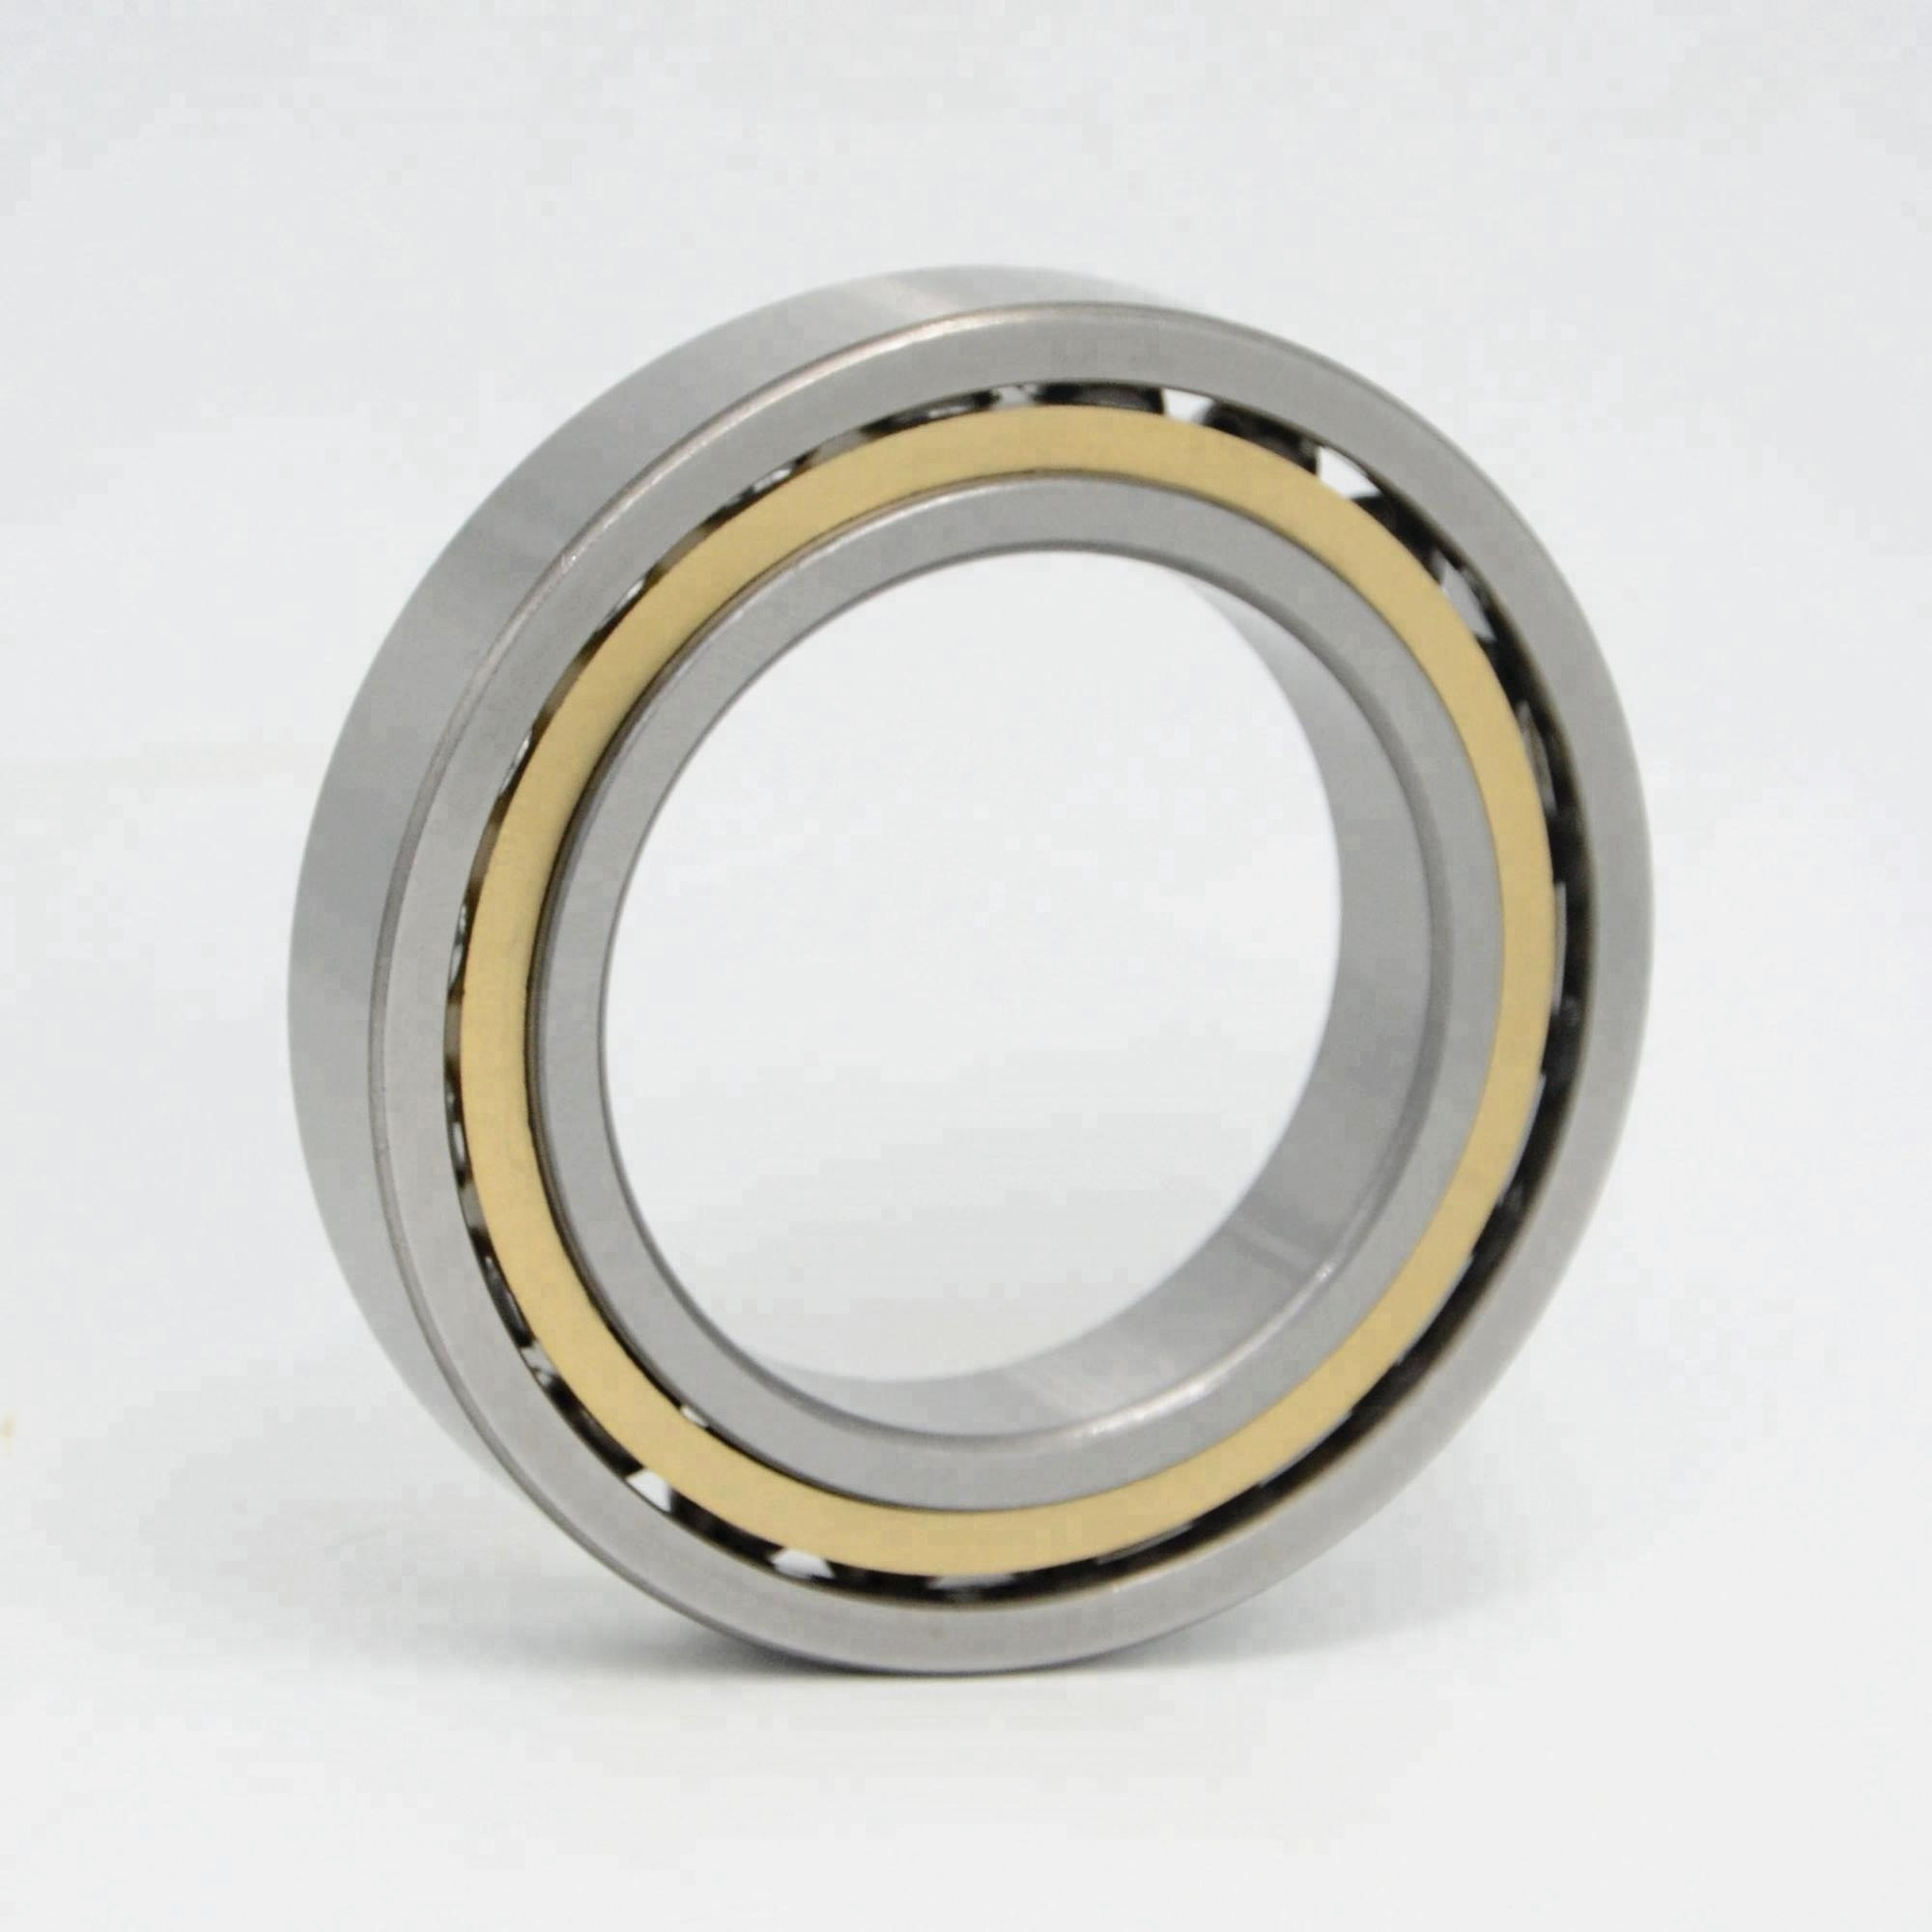 1Pcs 7302AC High Speed Angular Contact Spindle Ball Bearing 15*42*13mm